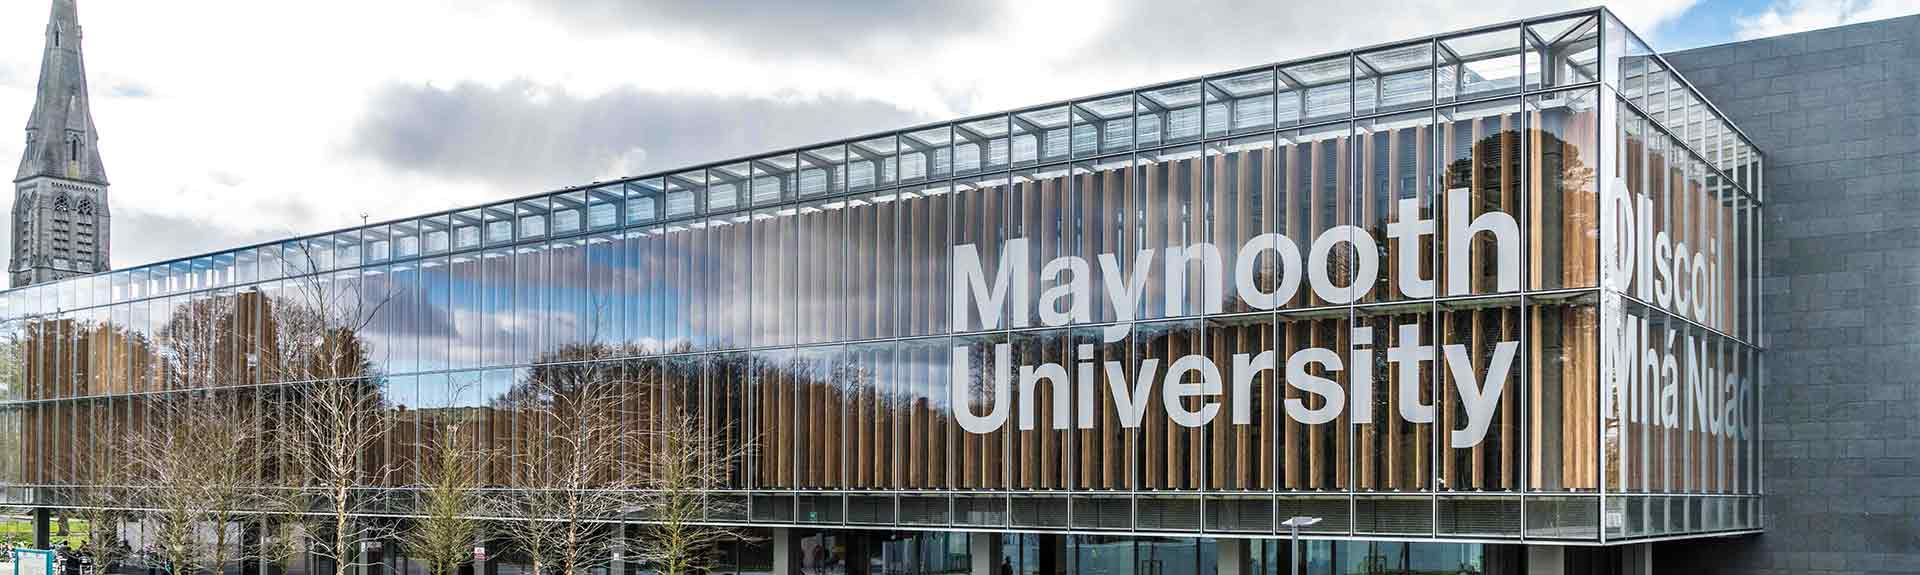 Photo de l'Université de Maynooth